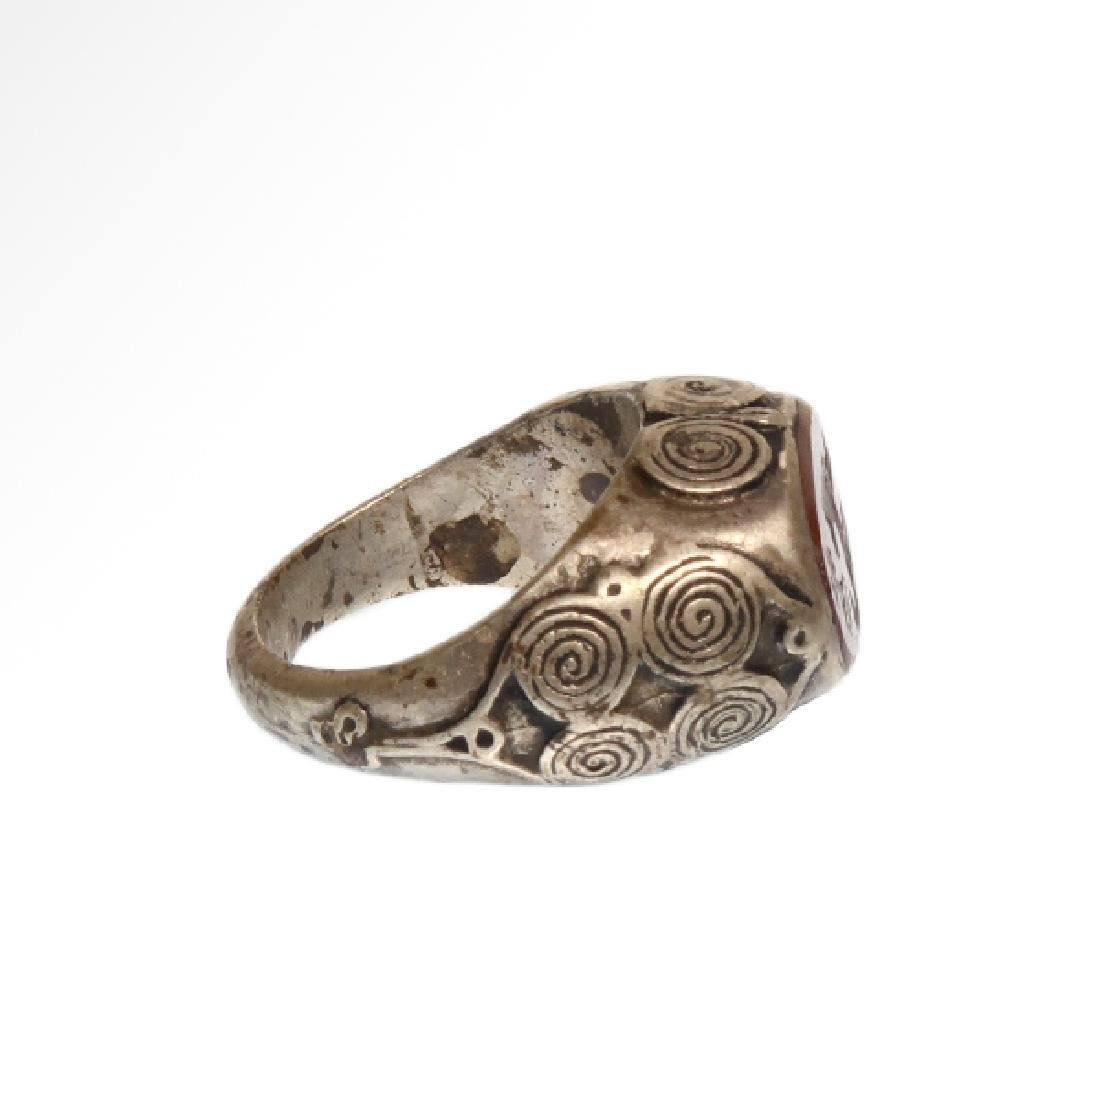 Viking Silver and Cornelian Ring, c. 10th Century A.D. - 3